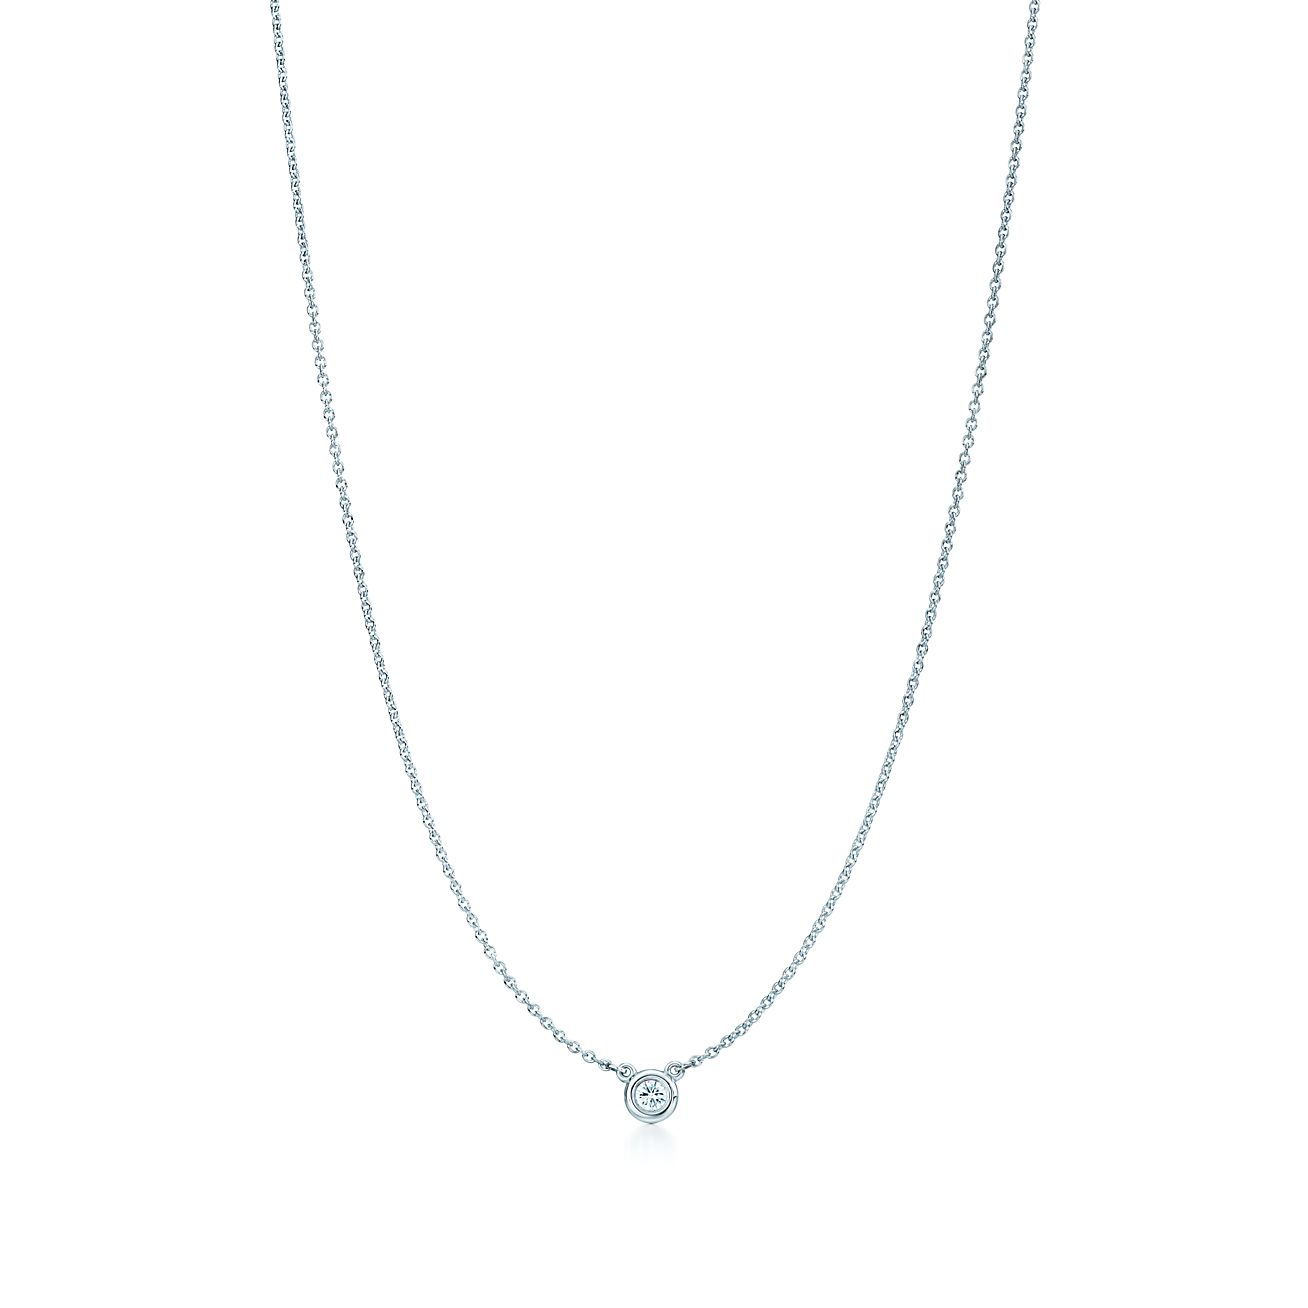 elsa peretti174 diamonds by the yard174 pendant in sterling